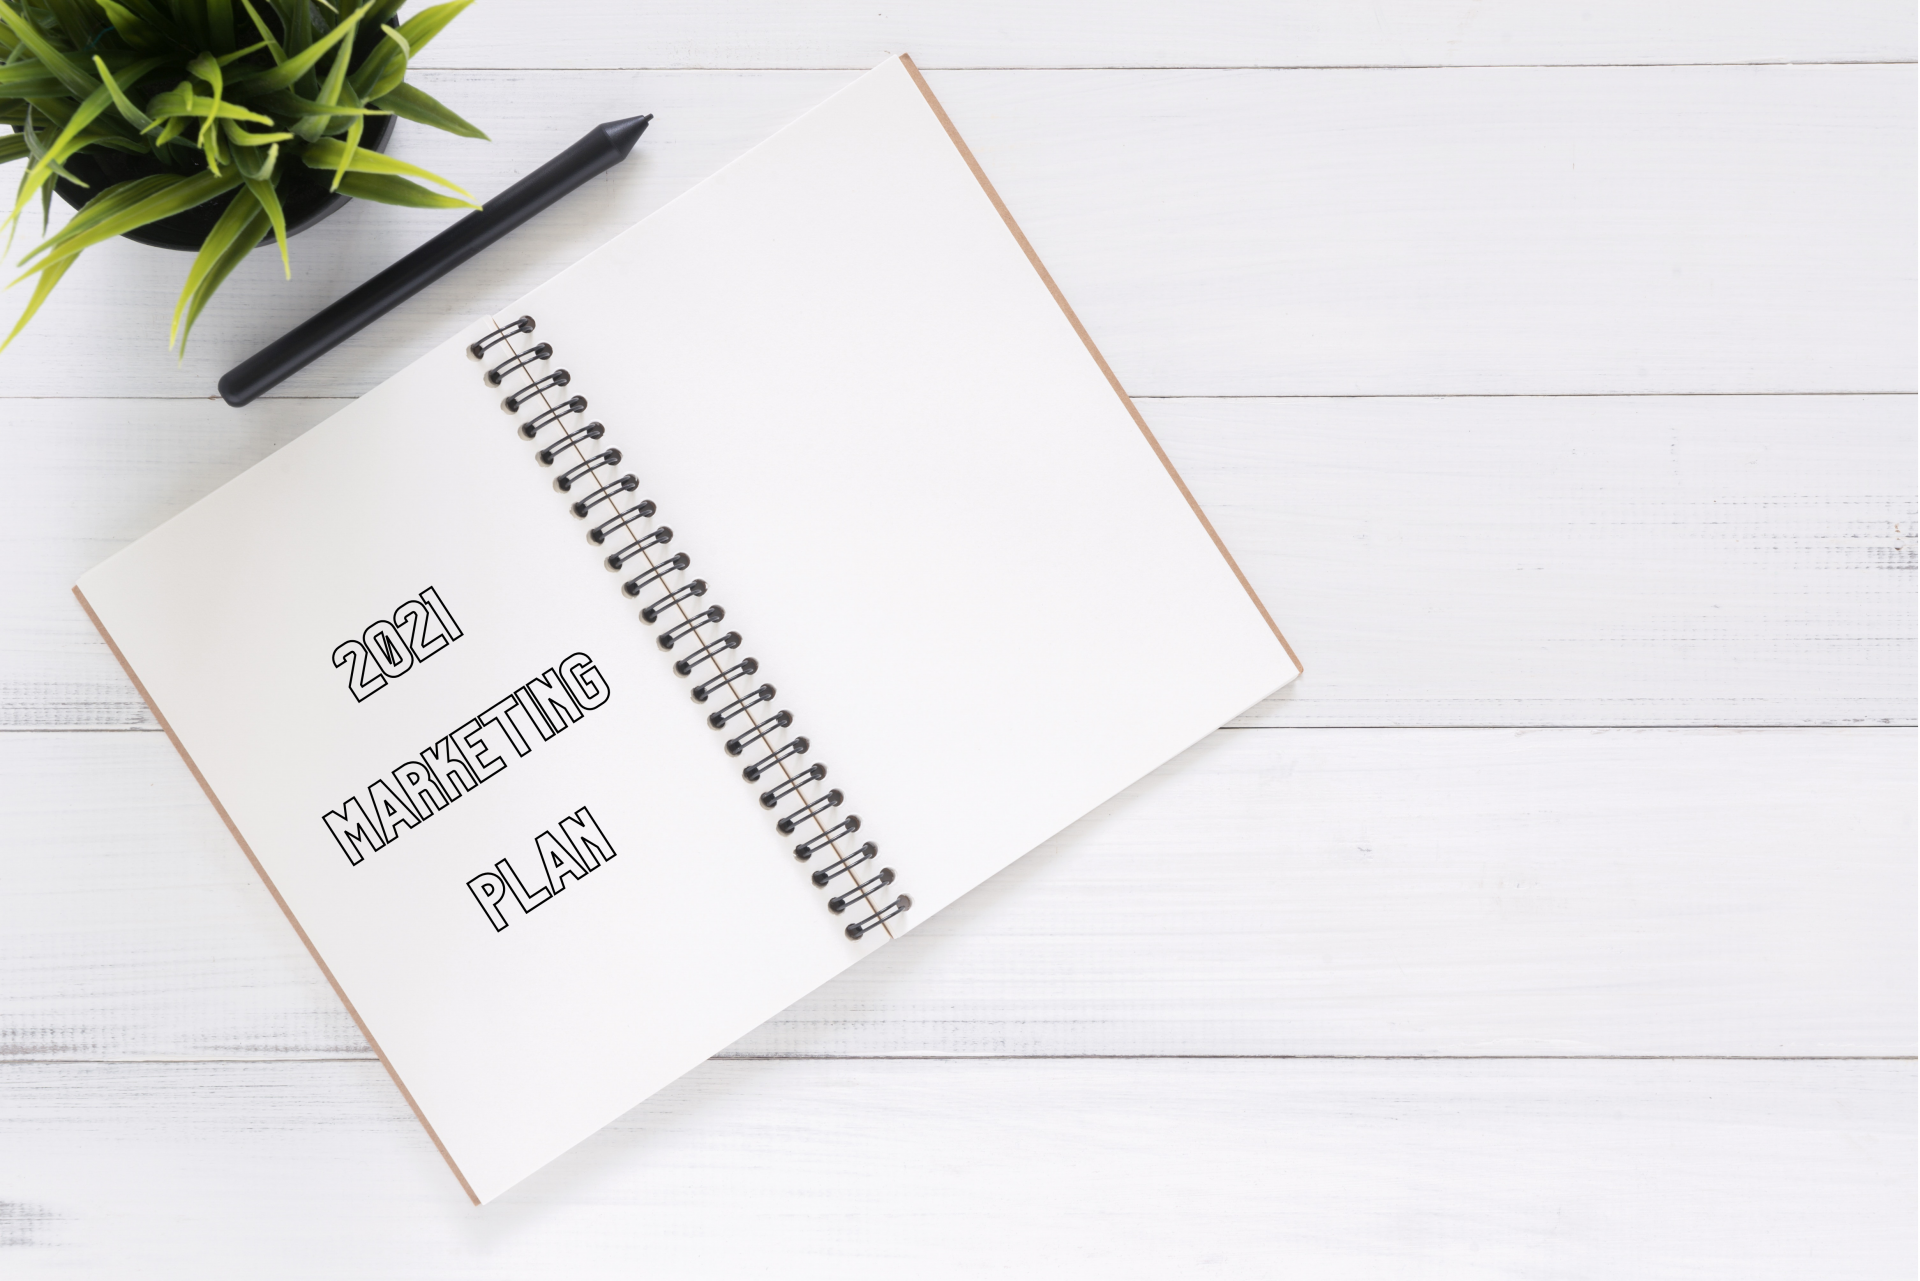 Our top tips for creating your 2021 SME business marketing plan